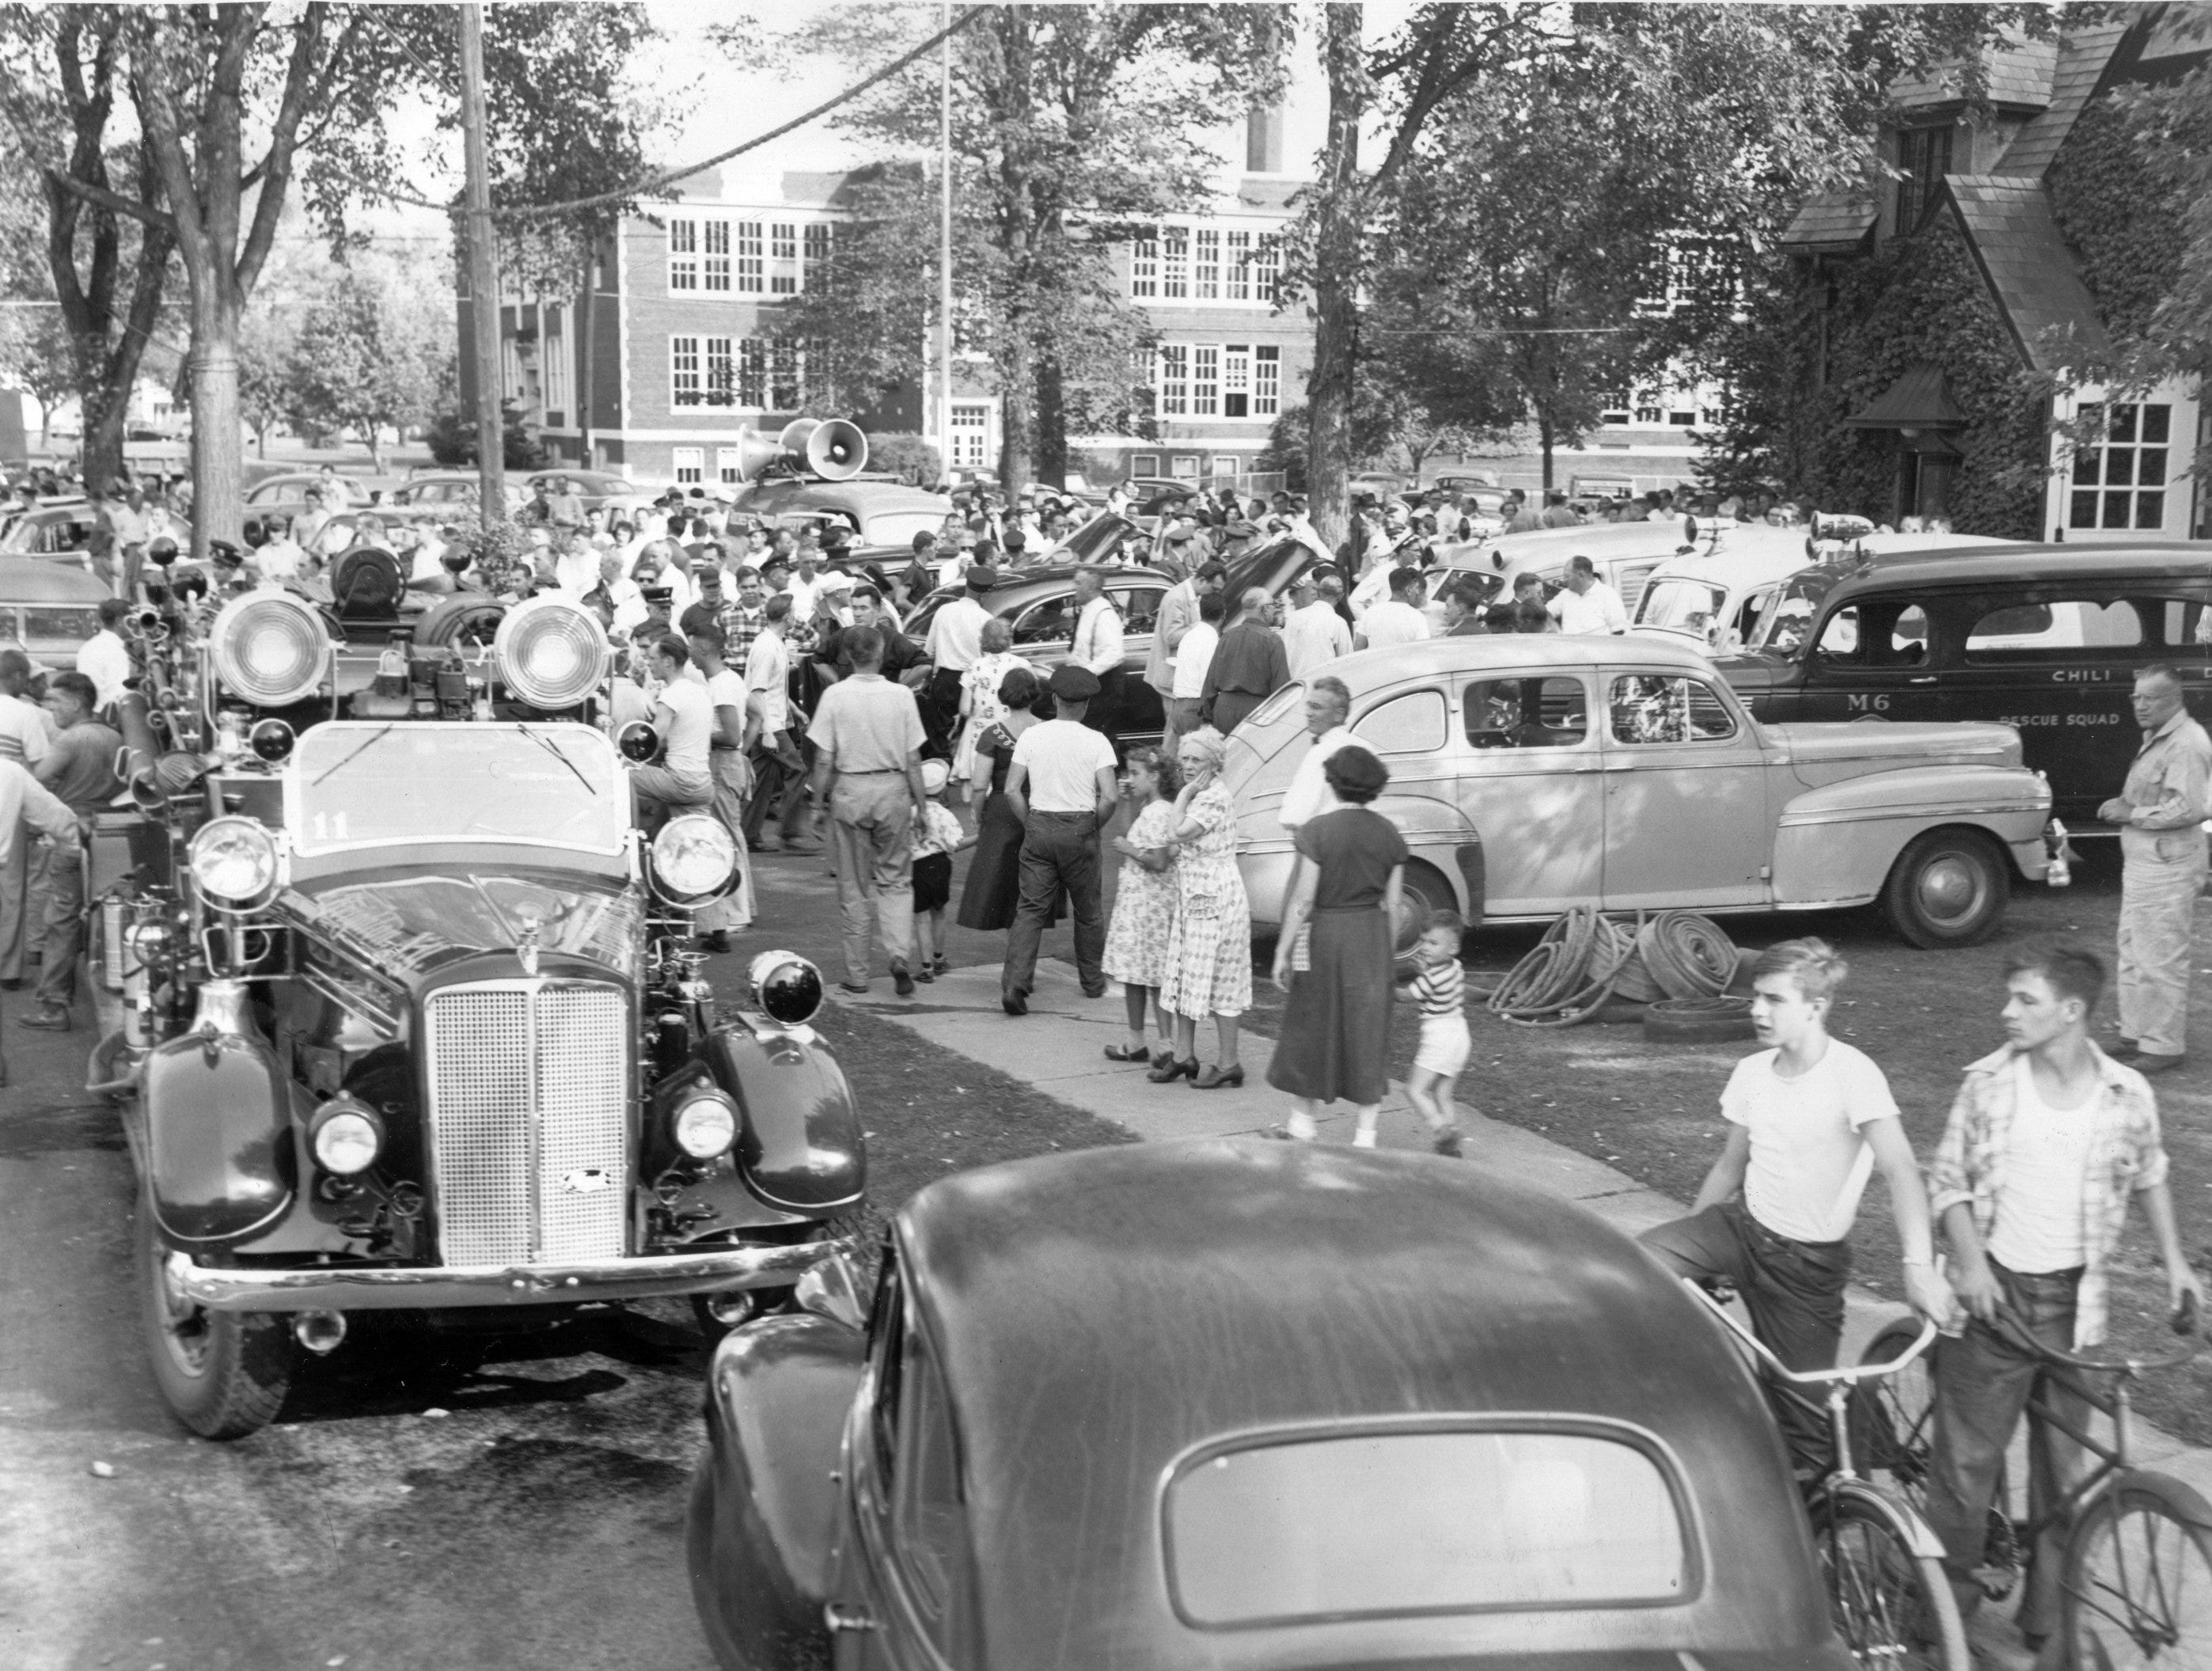 1951: Brighton residents gather near 12 Corners to hear announcements from authorities via loudspeakers on police cars after a string of gas explosions and fires ripped through Brighton neighborhoods. The incident left 3 dead and dozens without a place to live.